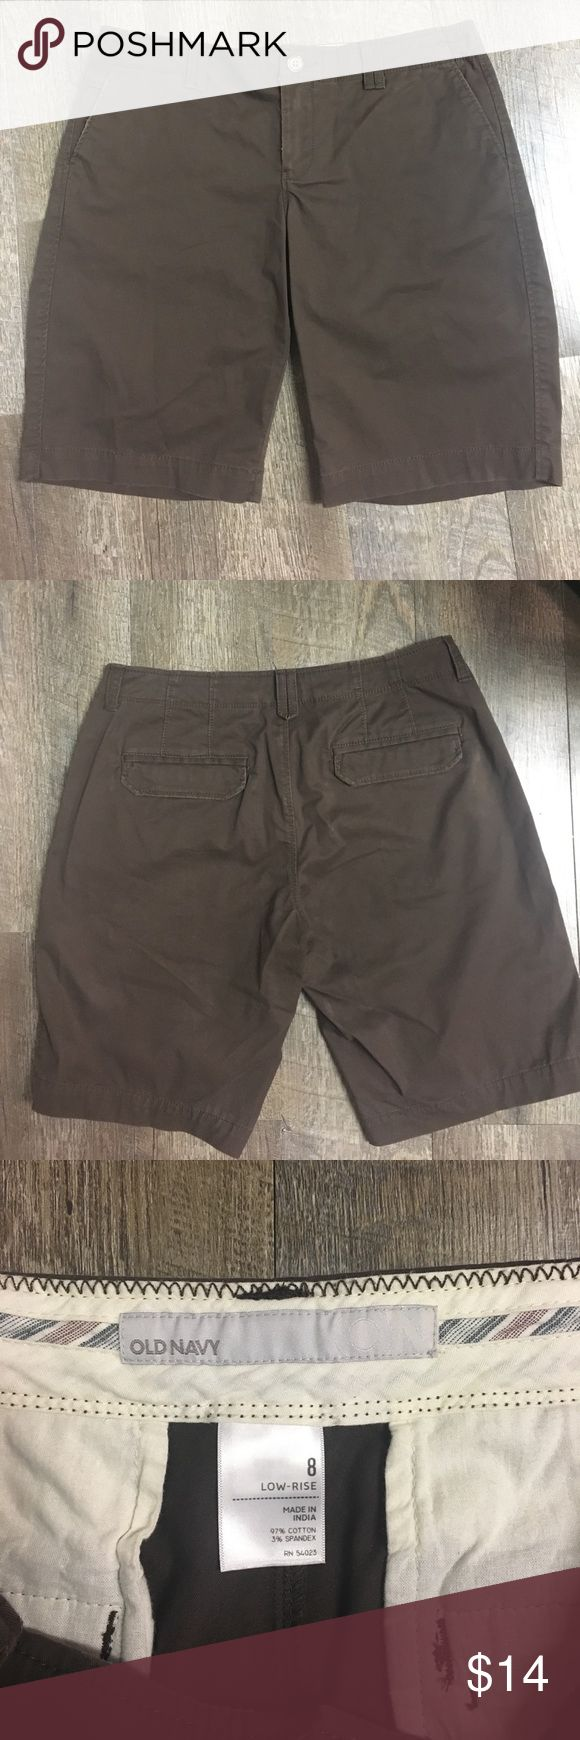 Old Navy shorts. Women's Old Navy low rise size 8 brown shorts Old Navy Shorts